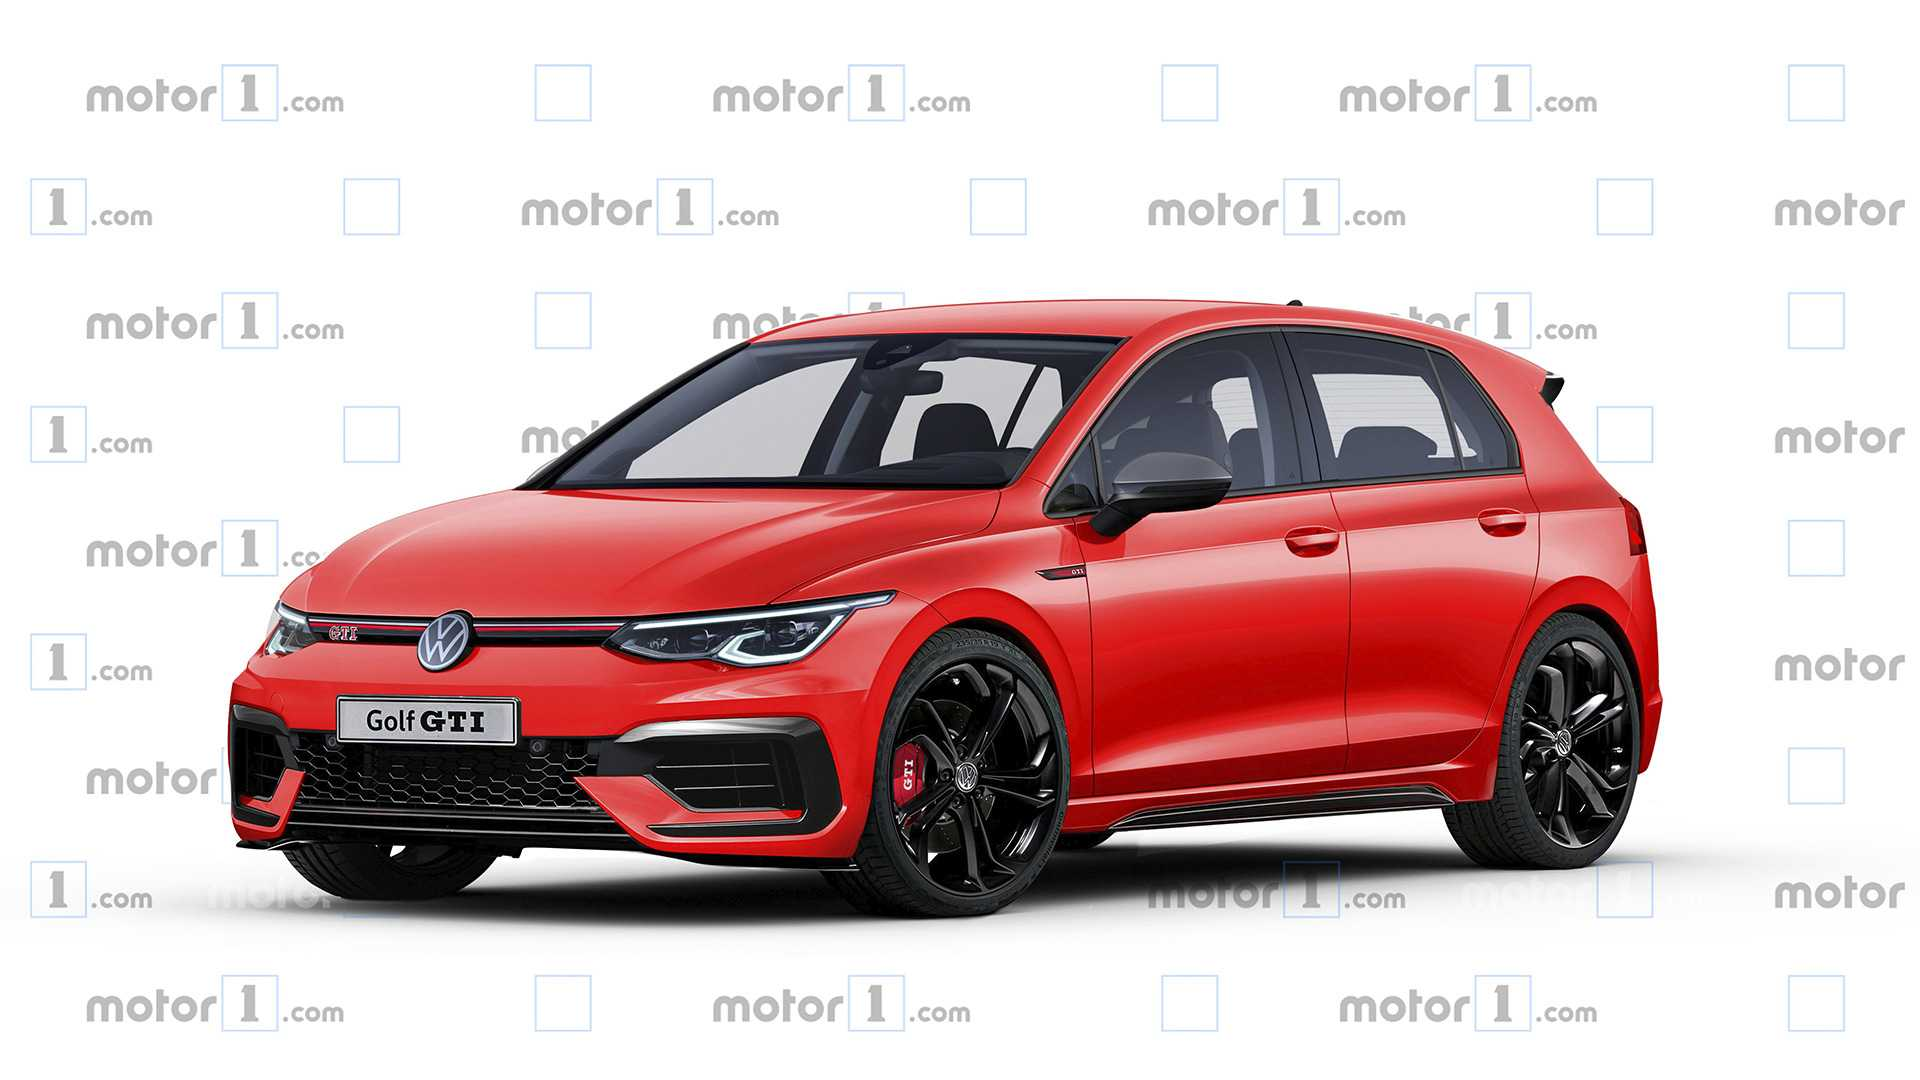 New Vw Golf Gti Tcr Allegedly Has Up To 286 Hp